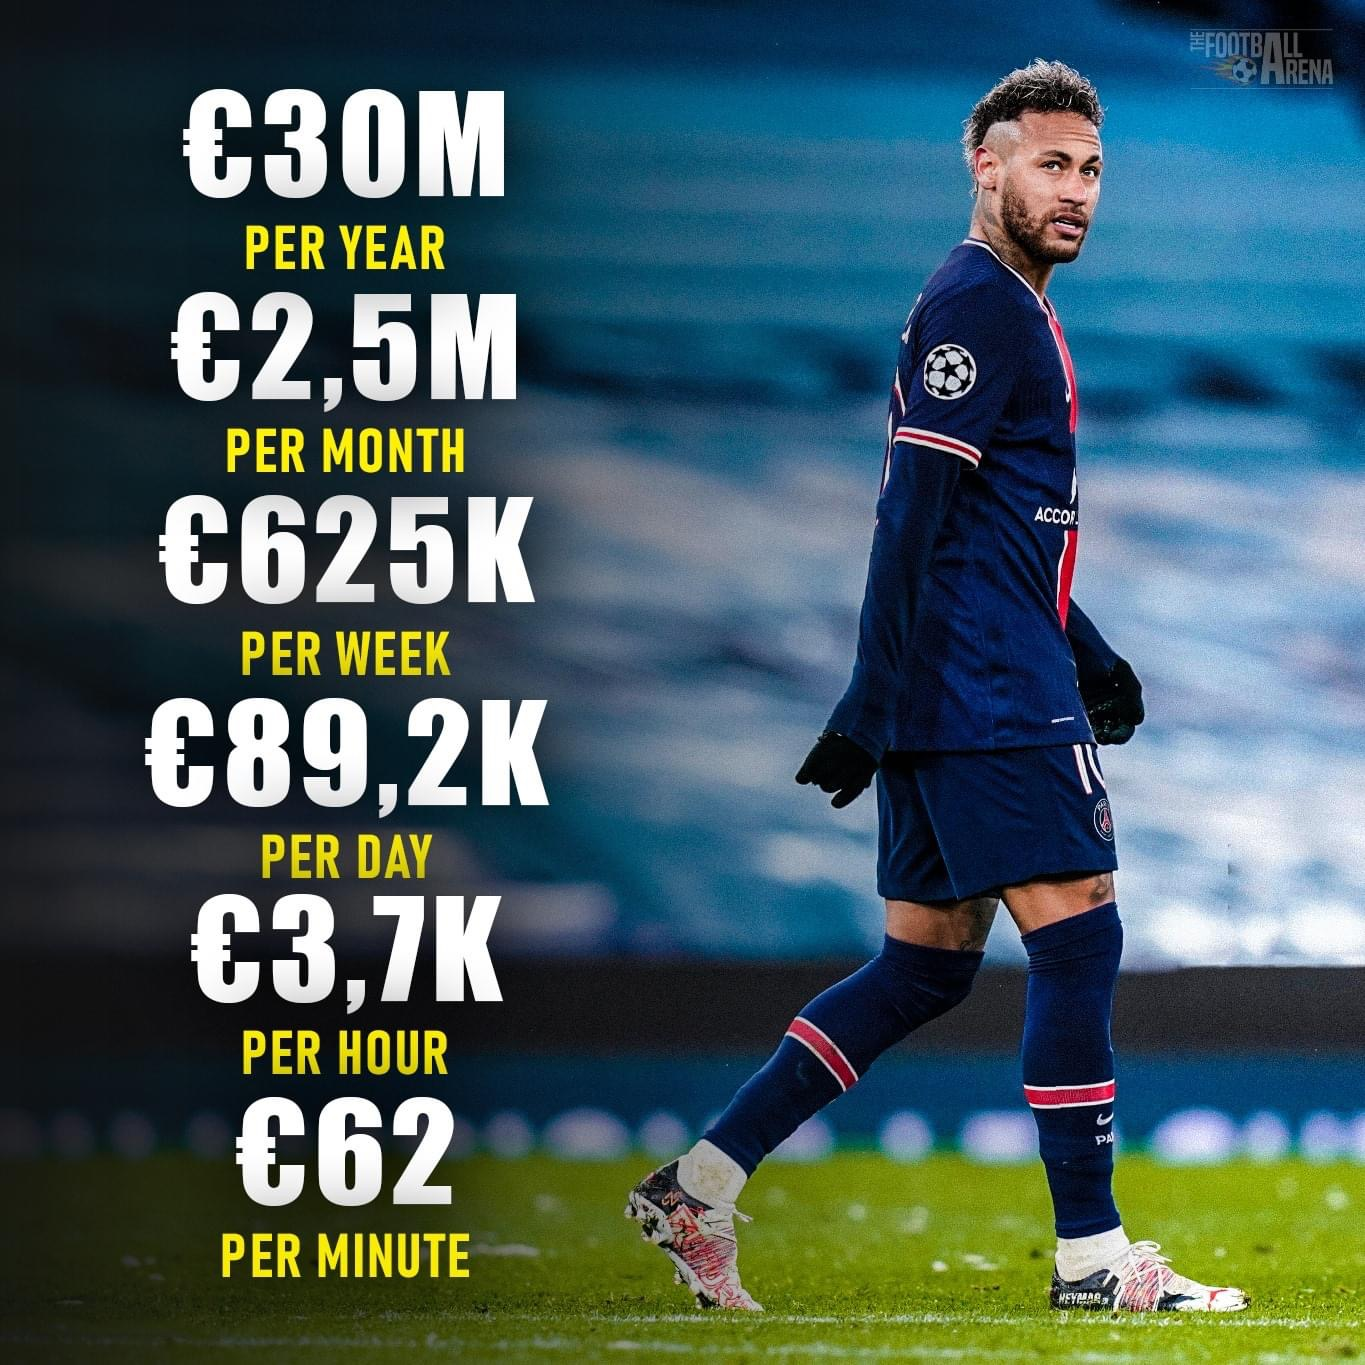 Neymar's New Salary At PSG